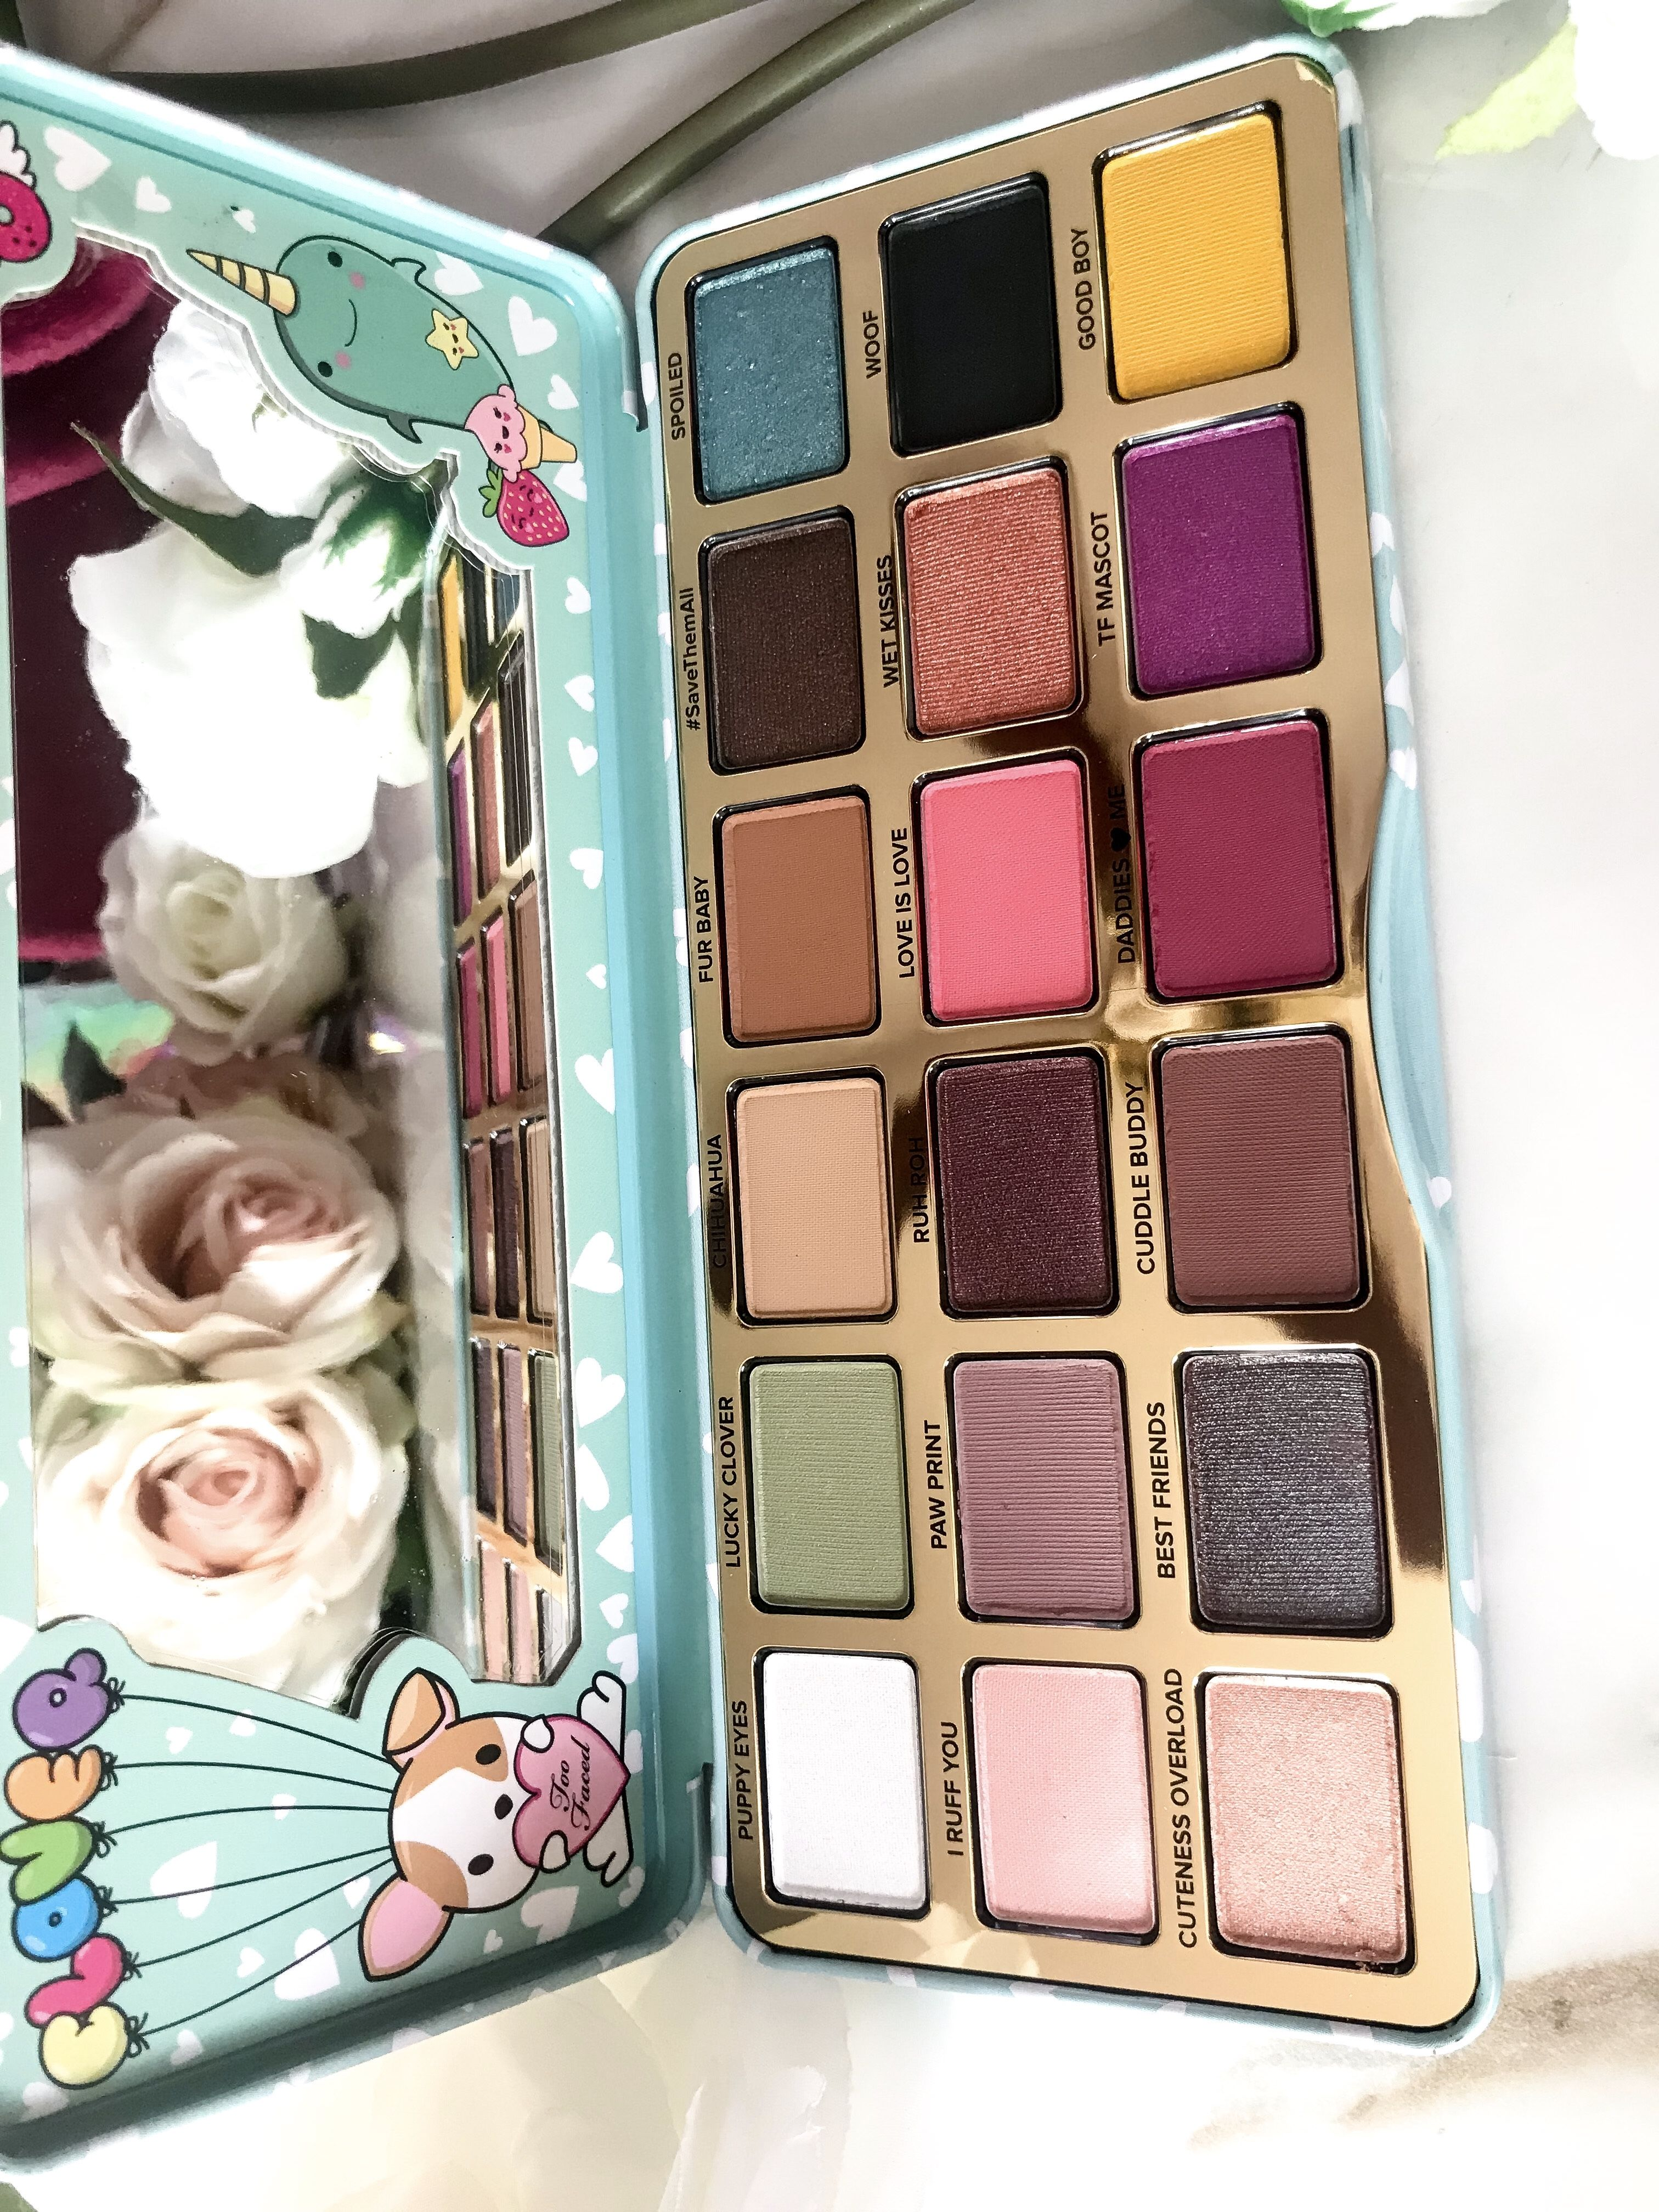 Too Faced Clover Eyeshadow Palette Swatches Eyeshadow